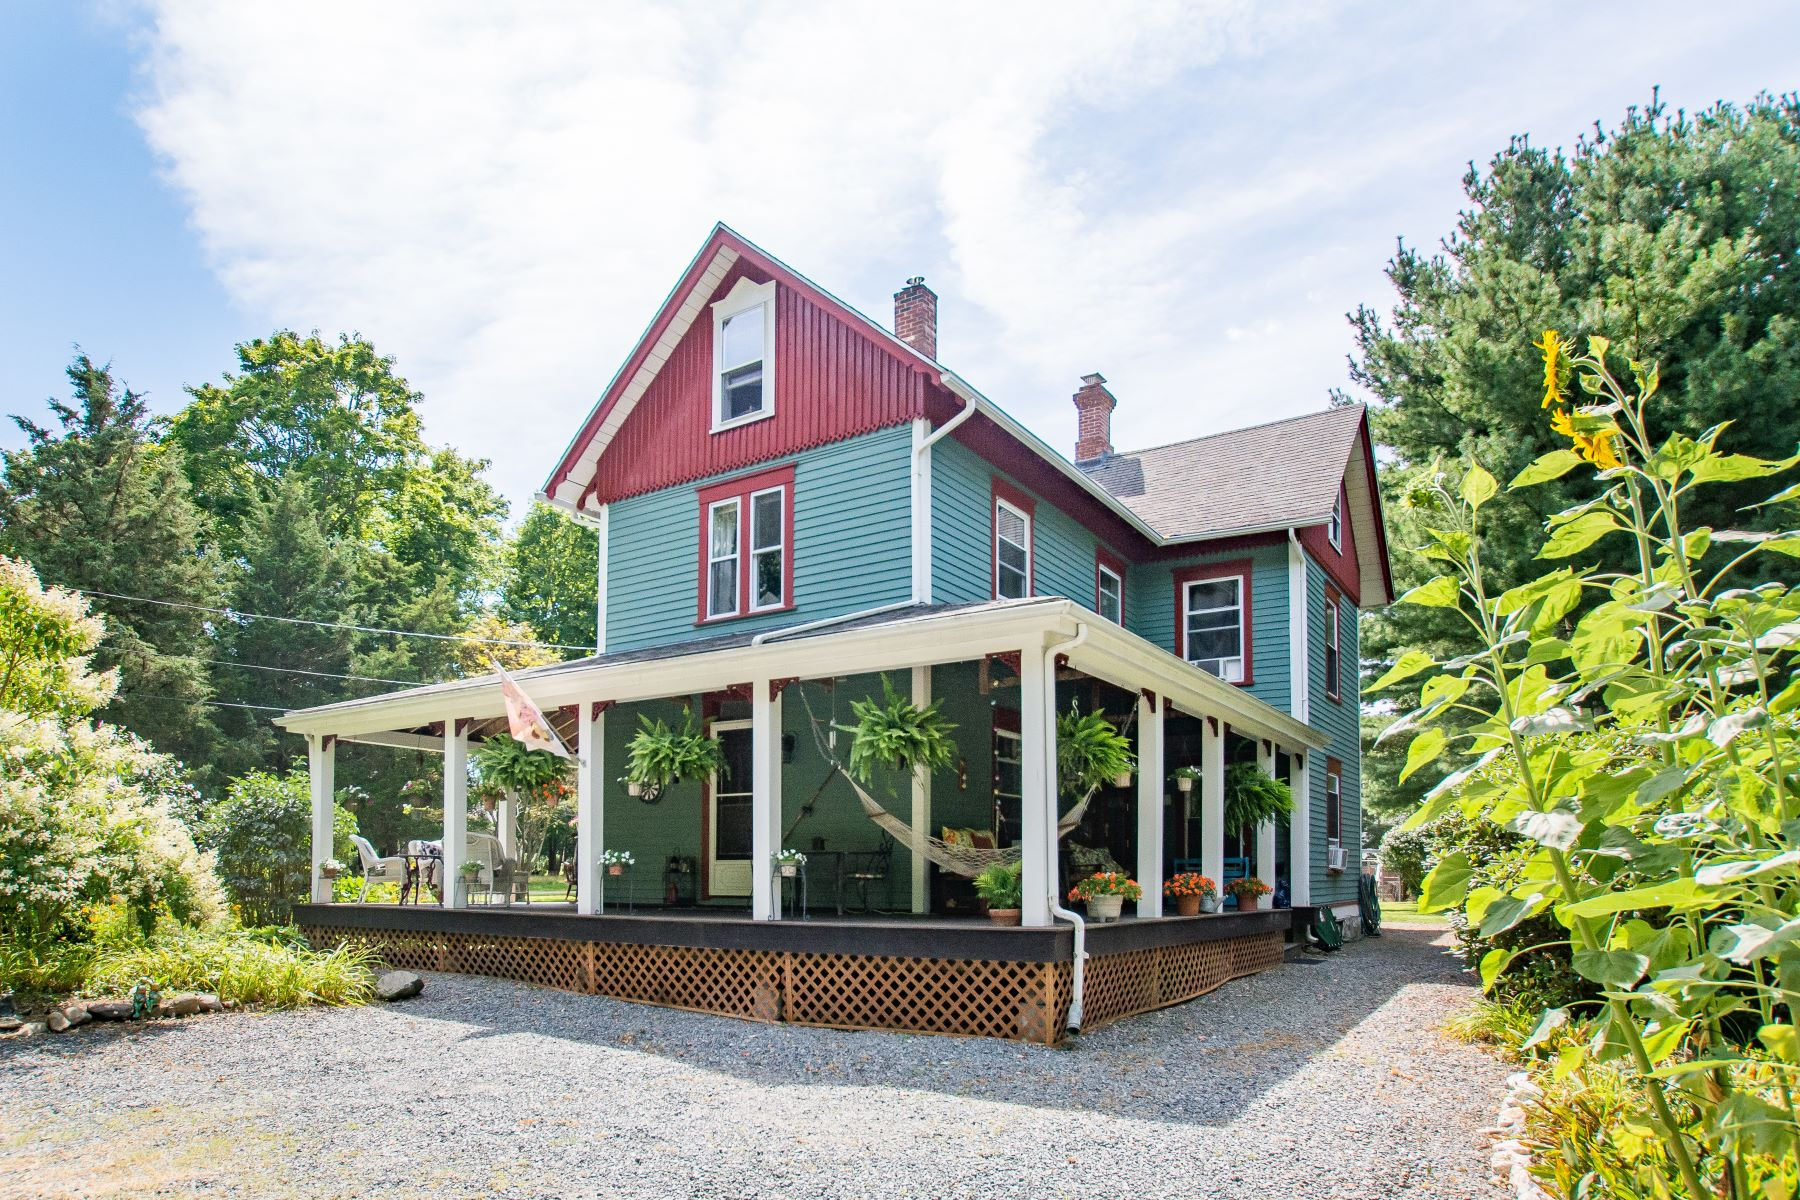 Single Family Homes for Sale at 883 East Shore Road, Jamestown, RI Jamestown, Rhode Island 02835 United States